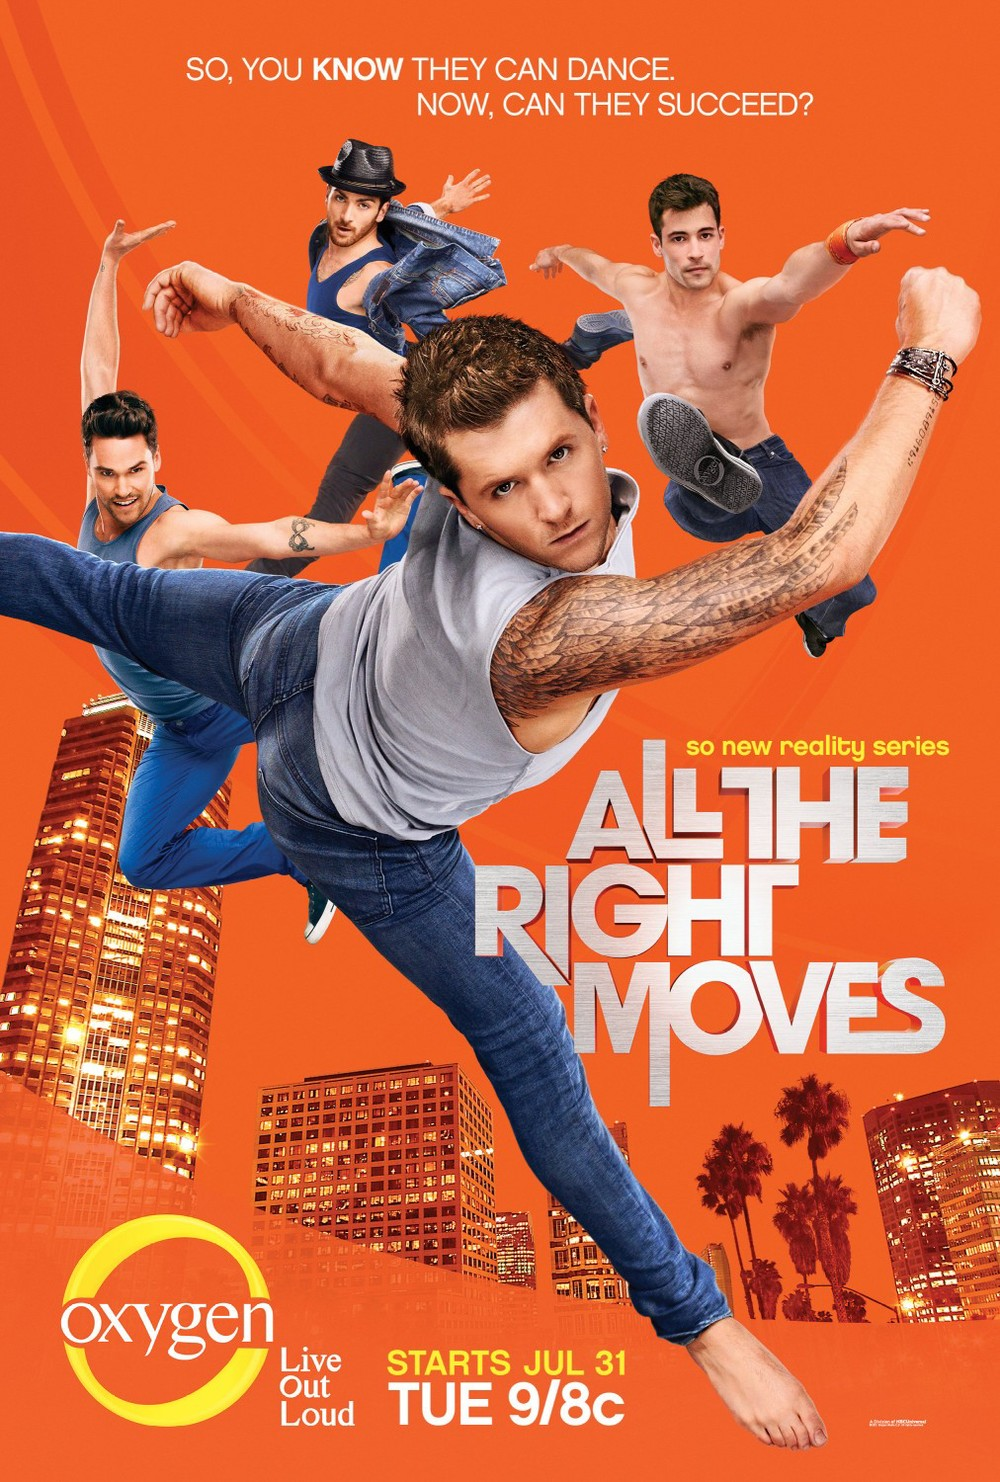 All the Right Moves - Co-Executive Producer